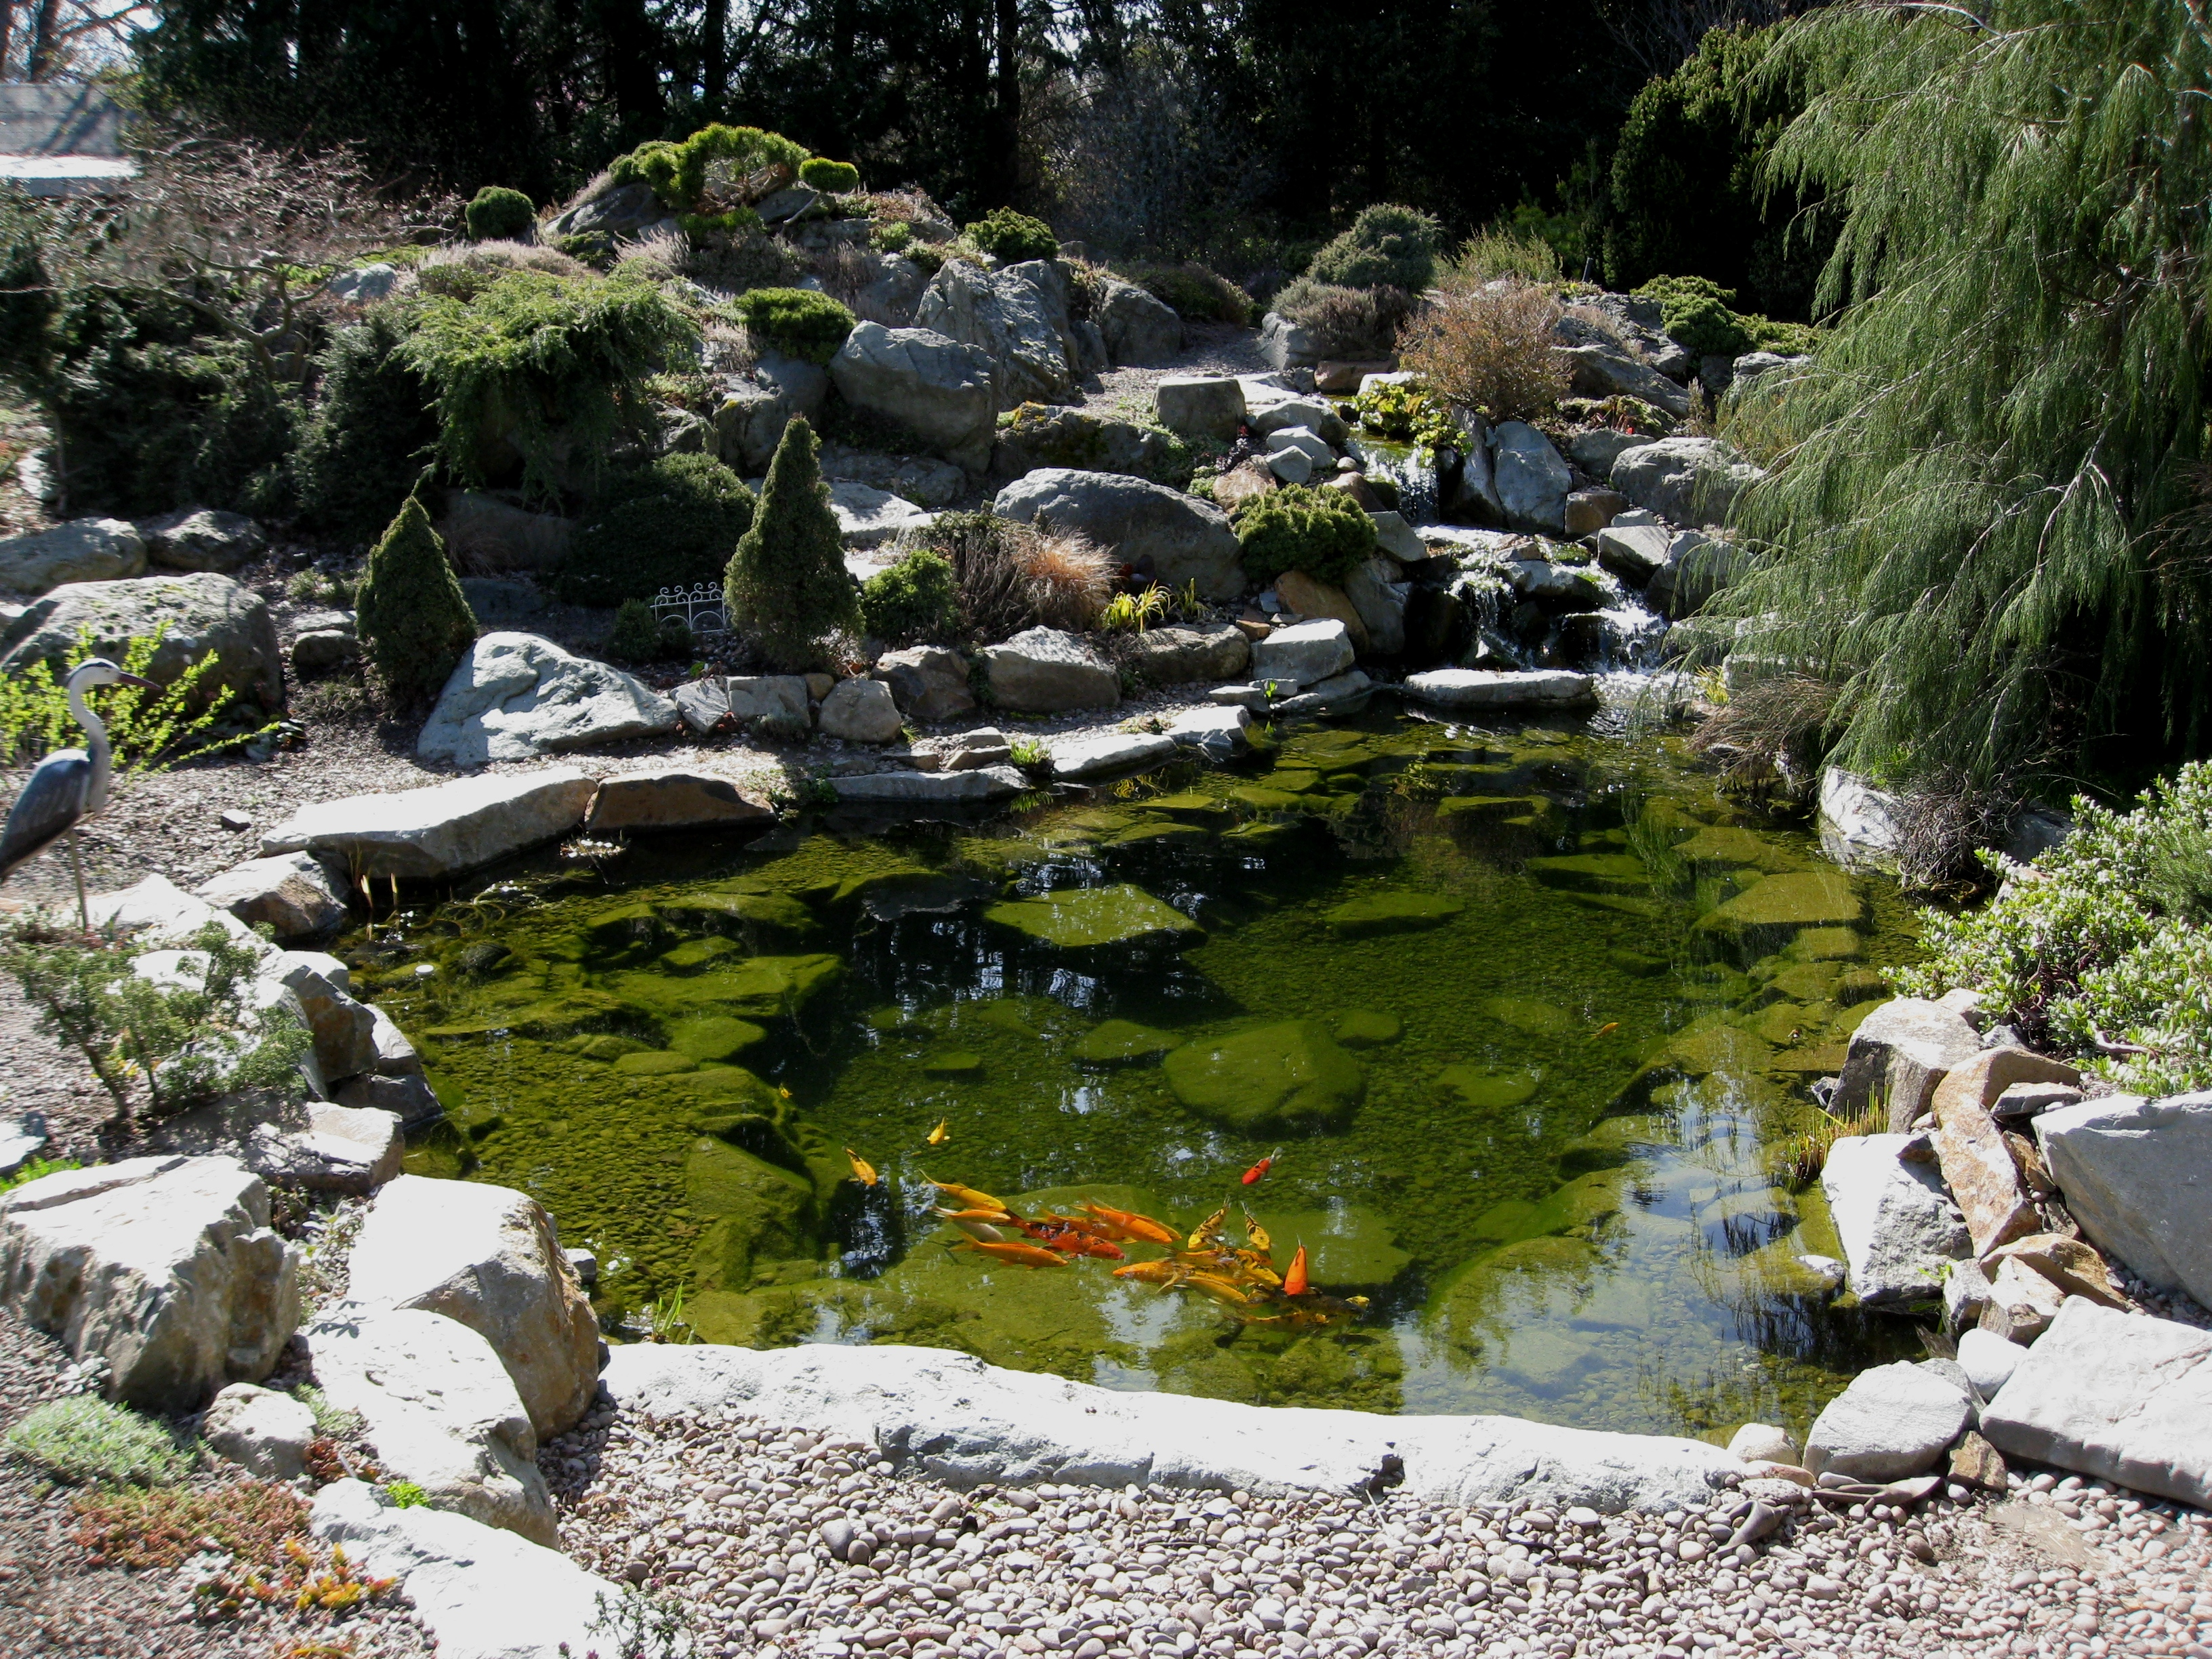 Seasonal pond maintenance neb info for Koi fish pond maintenance